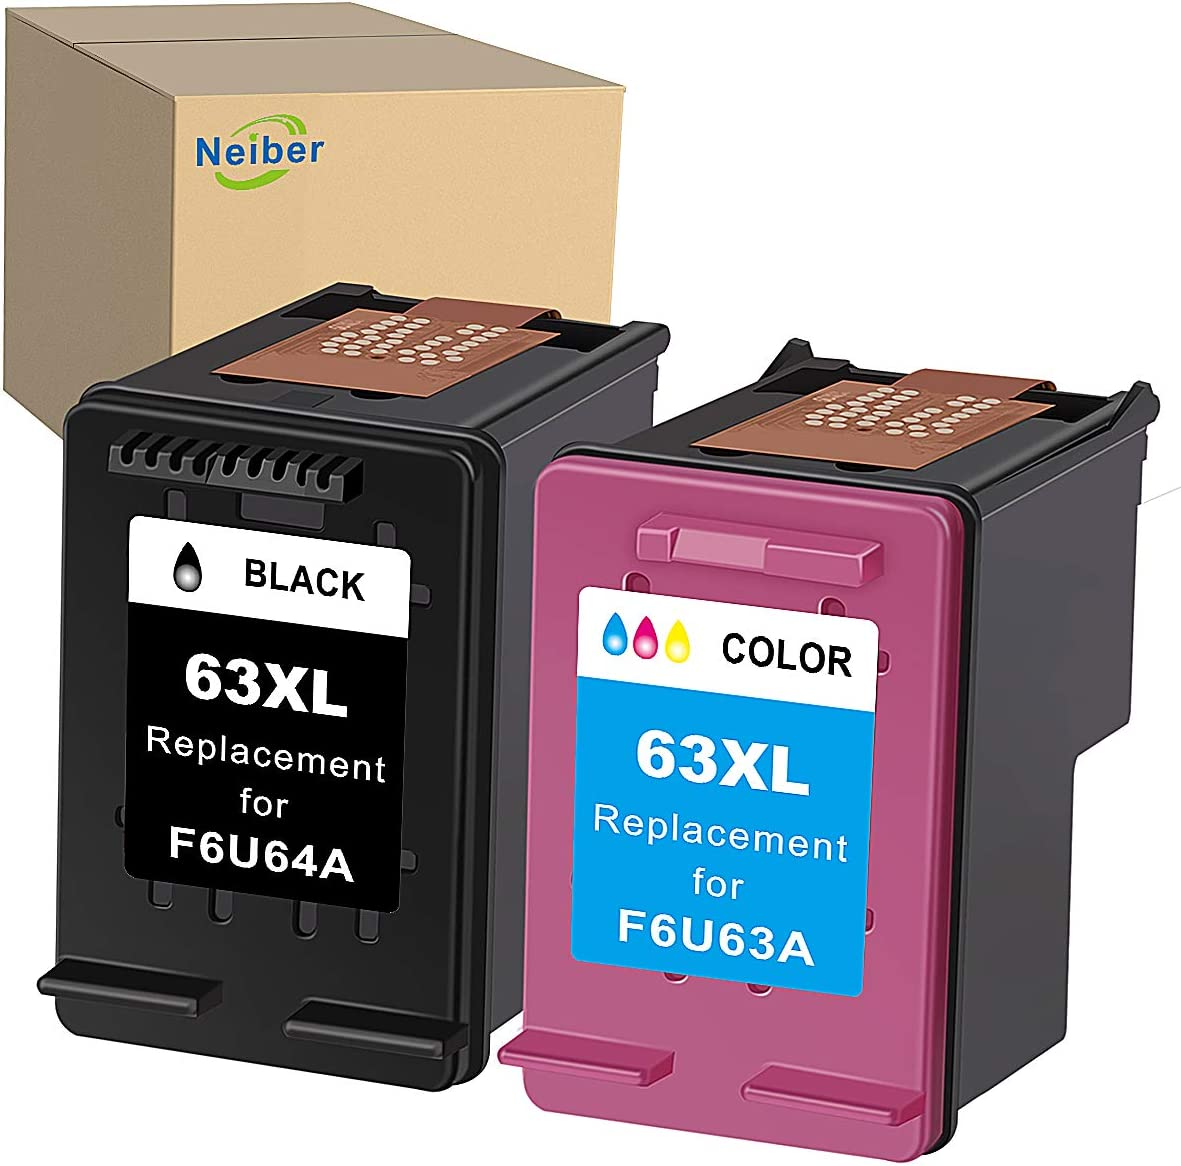 Neiber Remanufactured Ink Cartridge Replacement for HP 63XL 63 XL (Black Tri-Color 2-Pack) Work with Envy 4520 OfficeJet 3830 5252 4650 5258 4655 4652 DeskJet 3636 1111 3630 1112 3637 3632 Printer